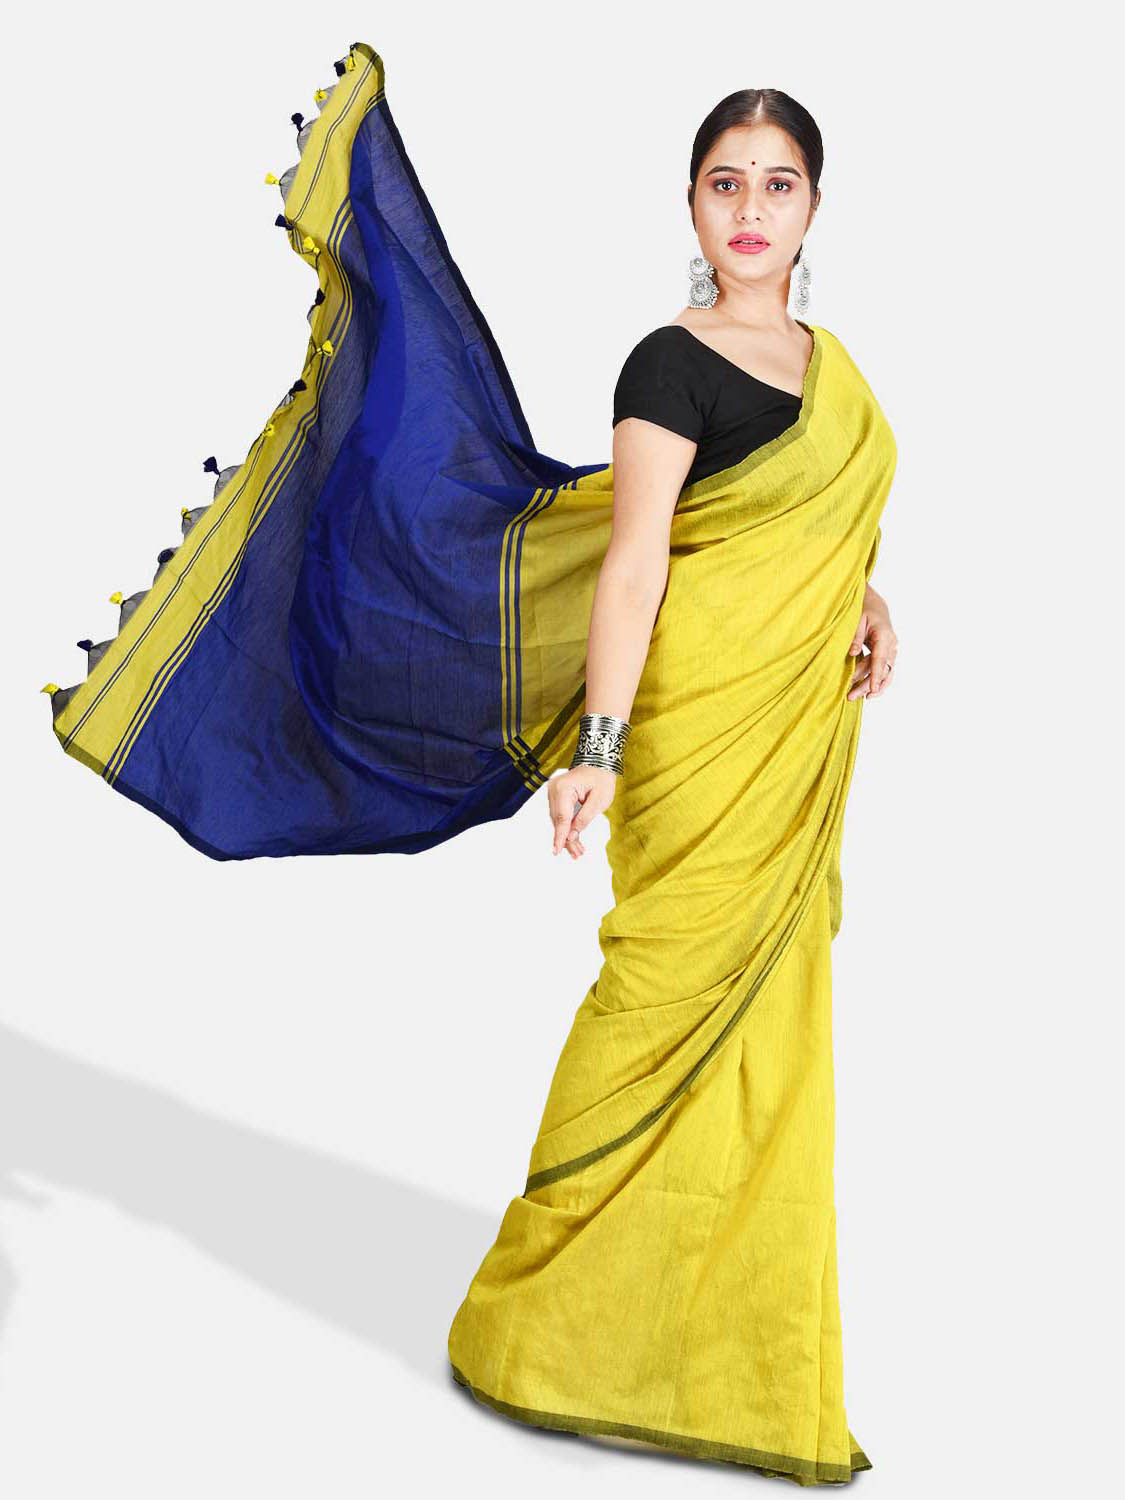 DESH BIDESH Women`s Cotton Silk and Bengal Soft Khadi Cotton Mix Ghicha Handloom Saree With Blouse Piece (GreenYellow Light Blue)